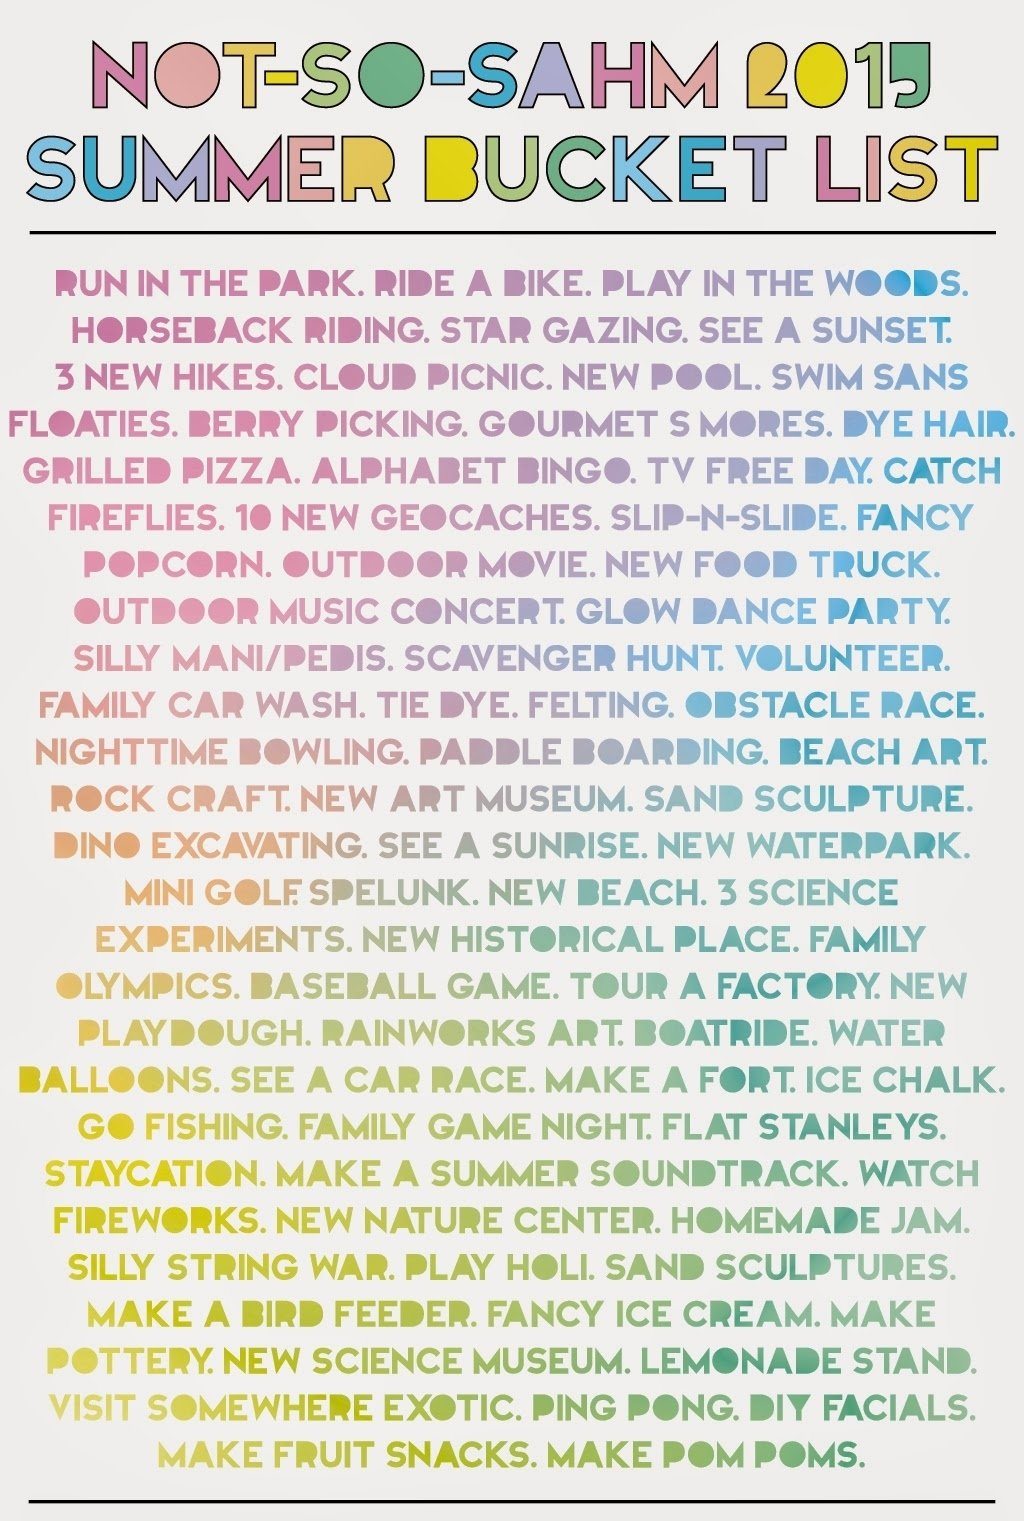 not-so-sahm: 2015 summer bucket list -- 75+ ideas of summer fun!